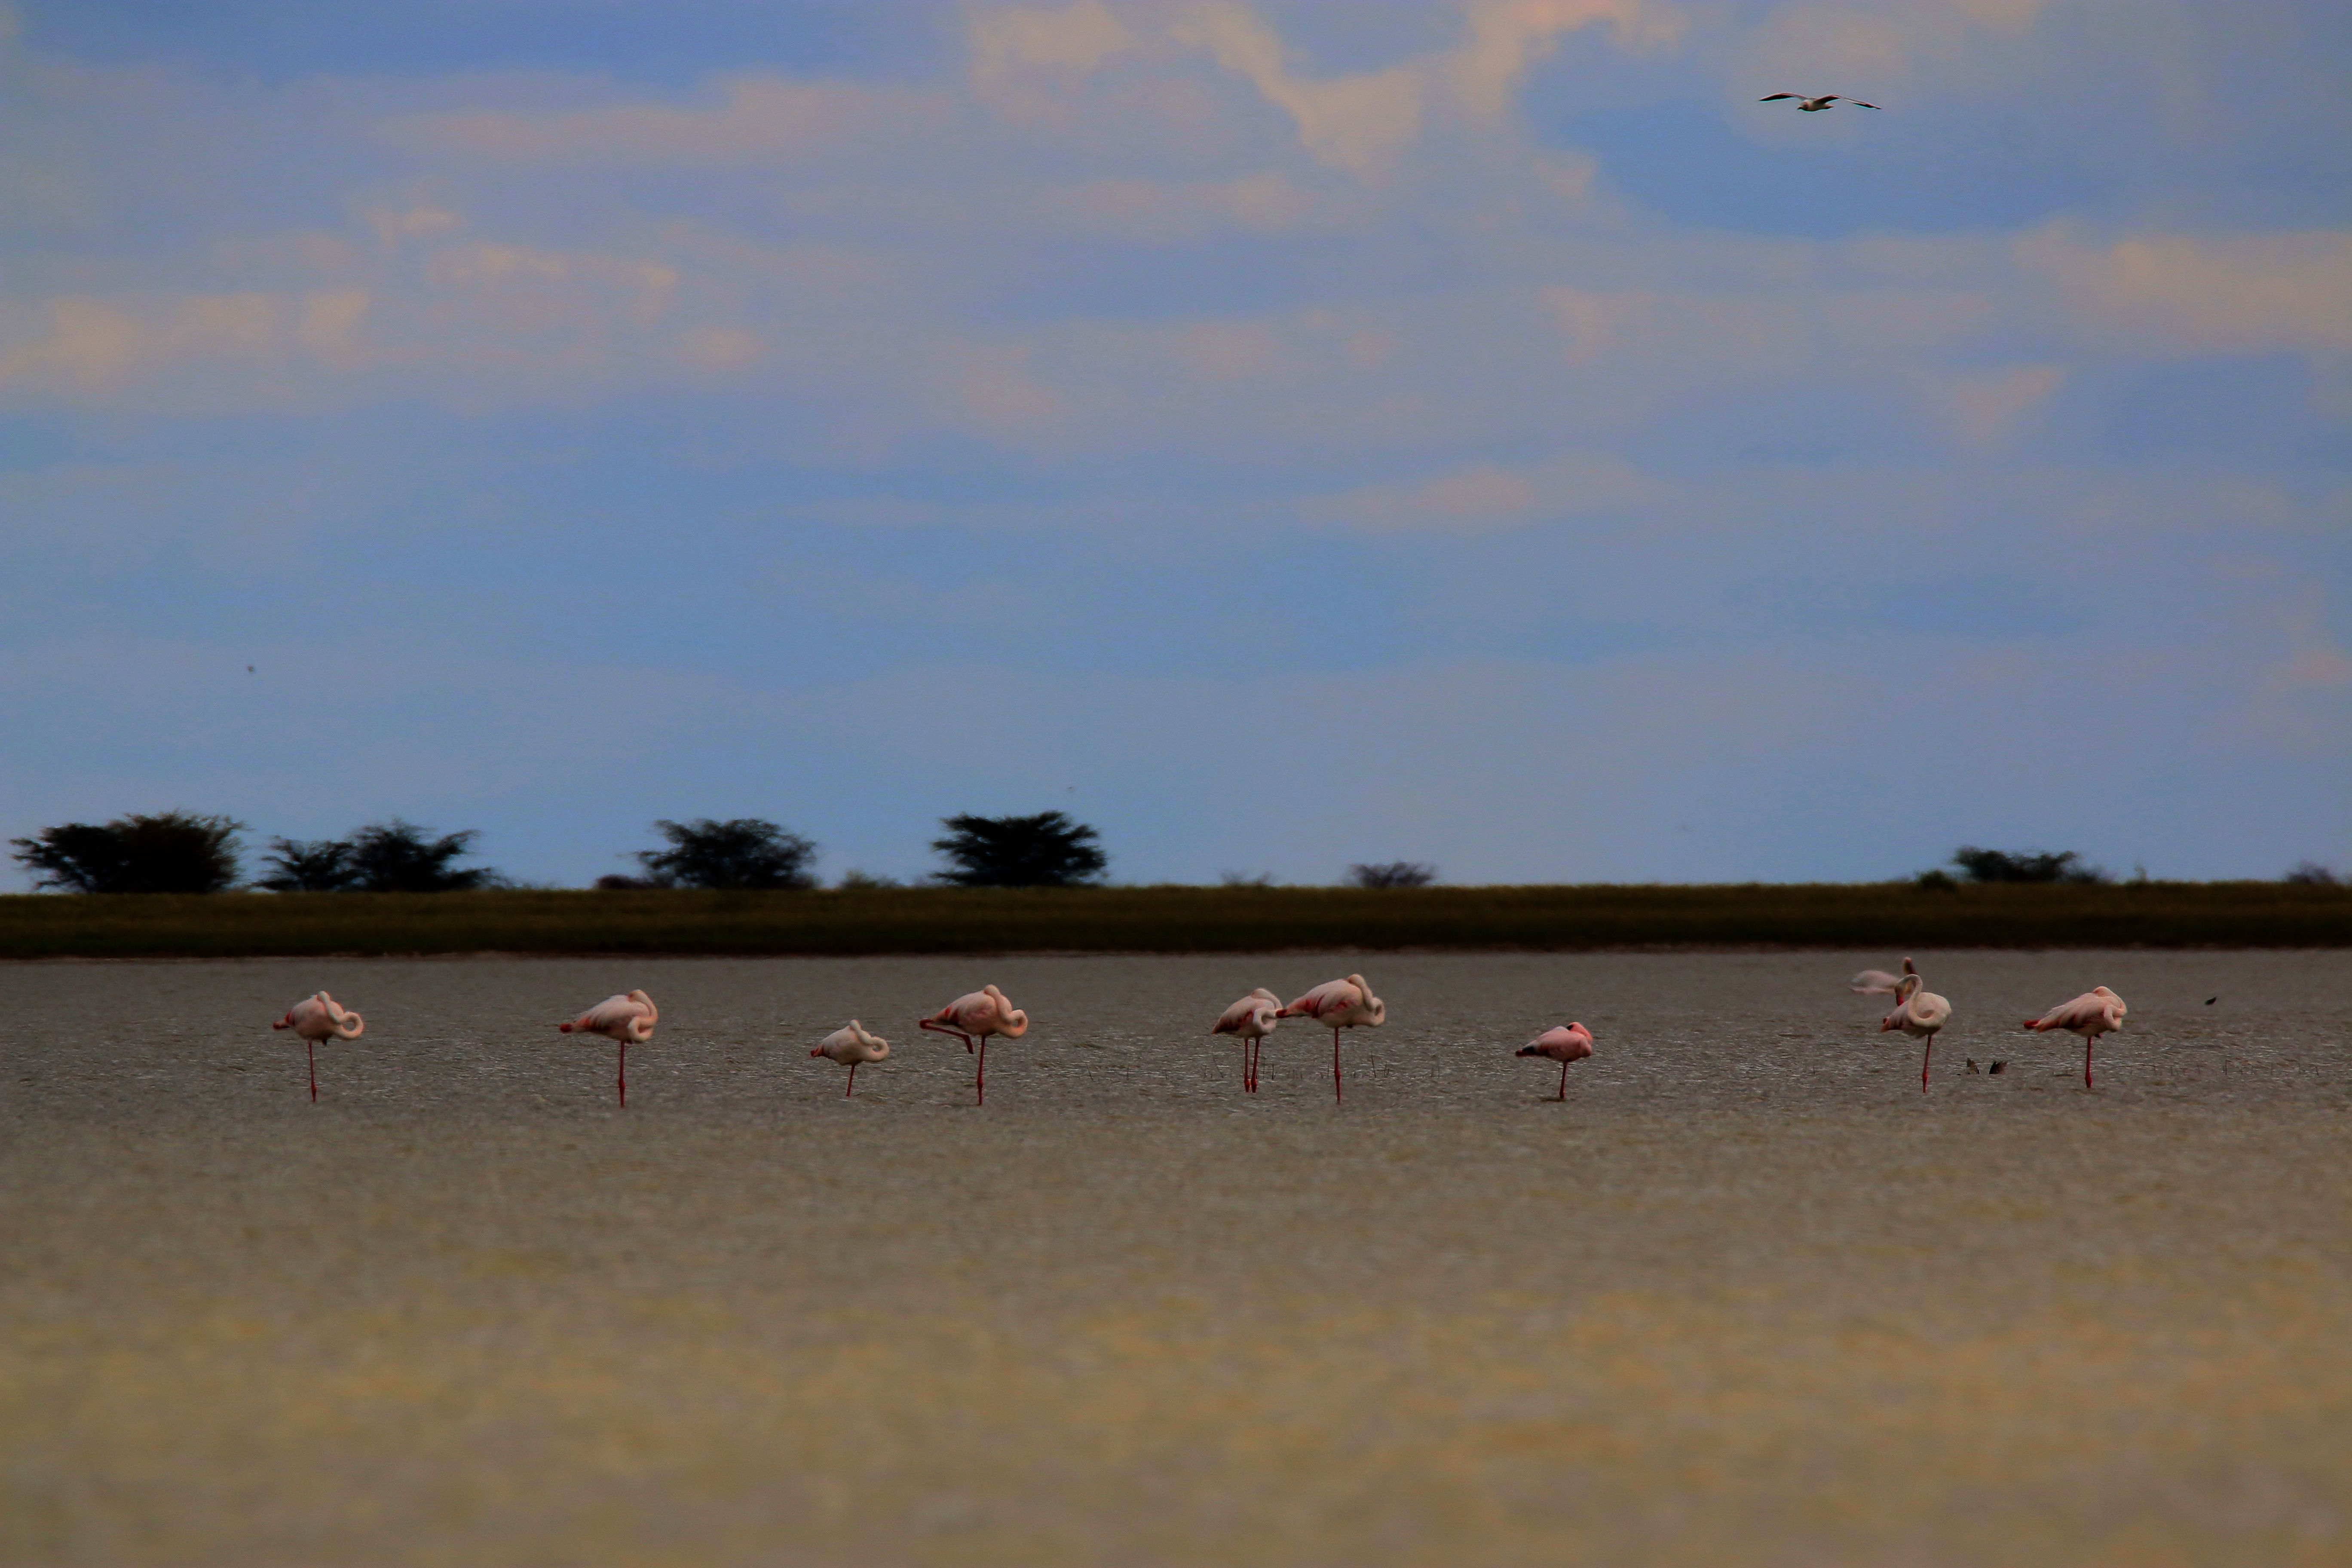 Experience the Makgadikgadi Pans with Pelican Lodge; www.pelicanlodge.co.bw, or www.facebook.com/Pelican.Lodge.Nata. A member of Africa Safari Camps, www.africasafaricamps.com. #explore | #discover | #experience | #botswana